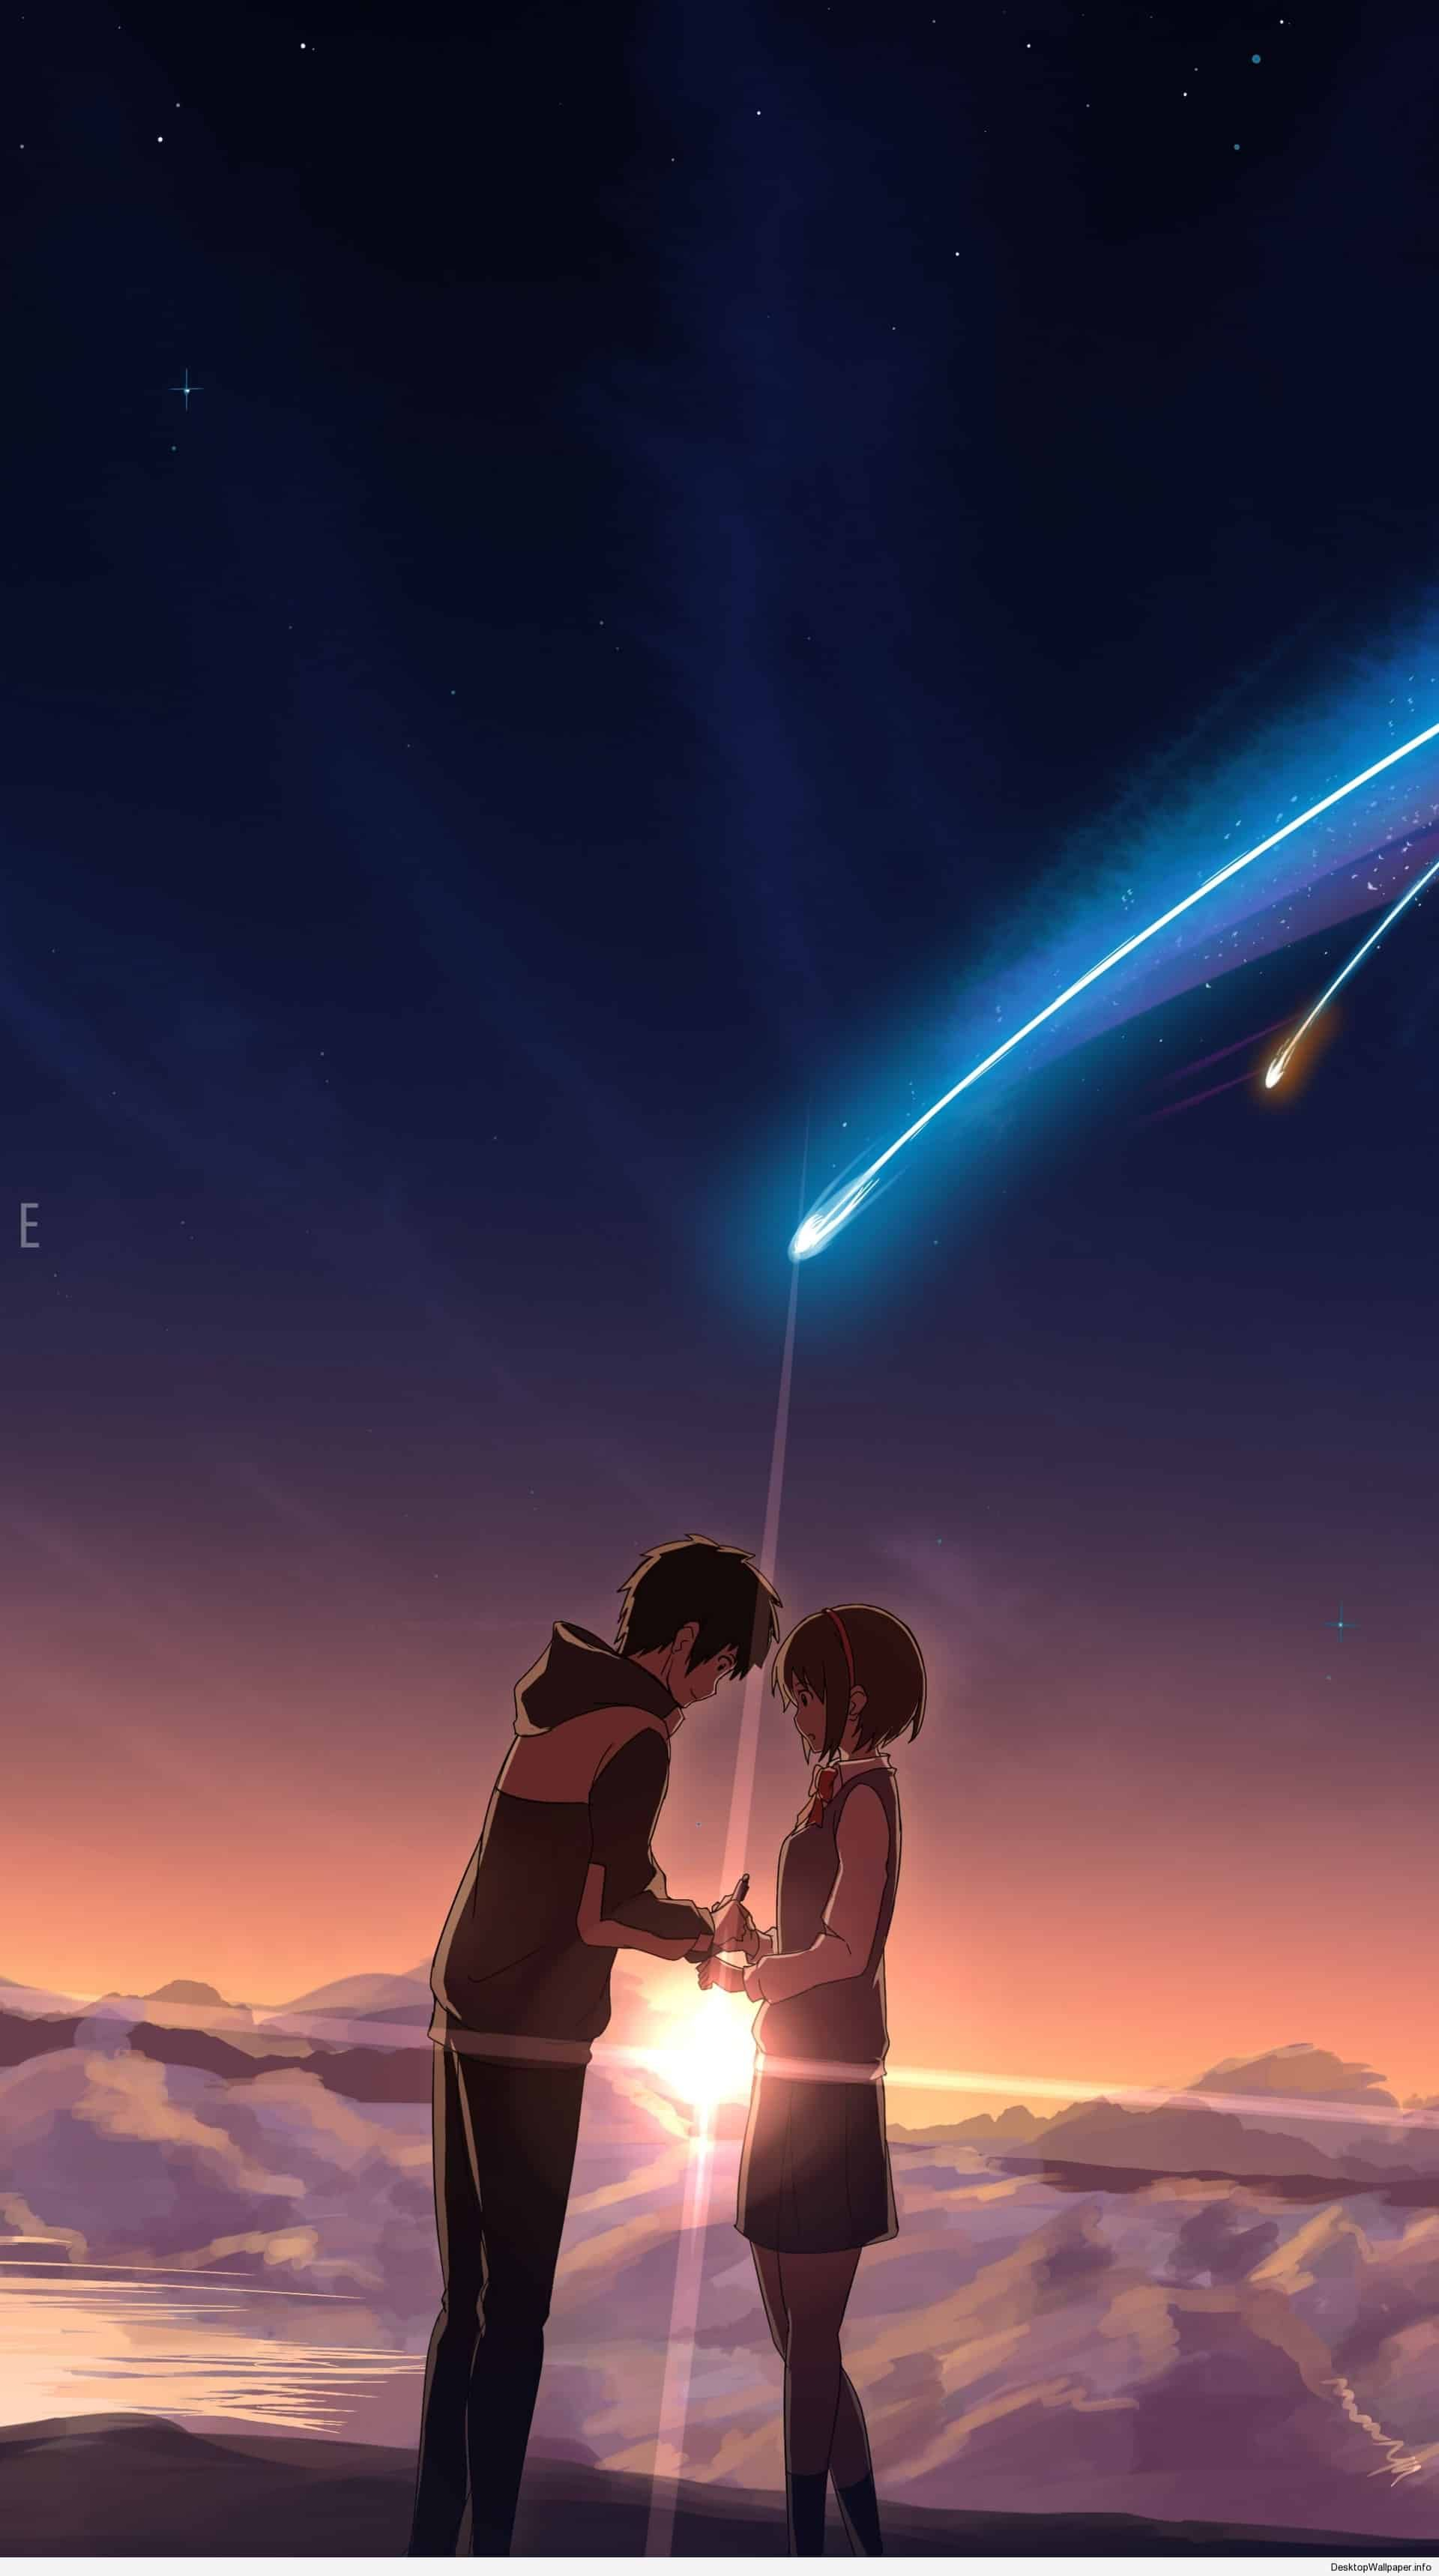 Your Name Wallpaper Iphone Xr : wallpaper, iphone, Wallpaper, Iphone, Pemandangan, Anime,, Khayalan,